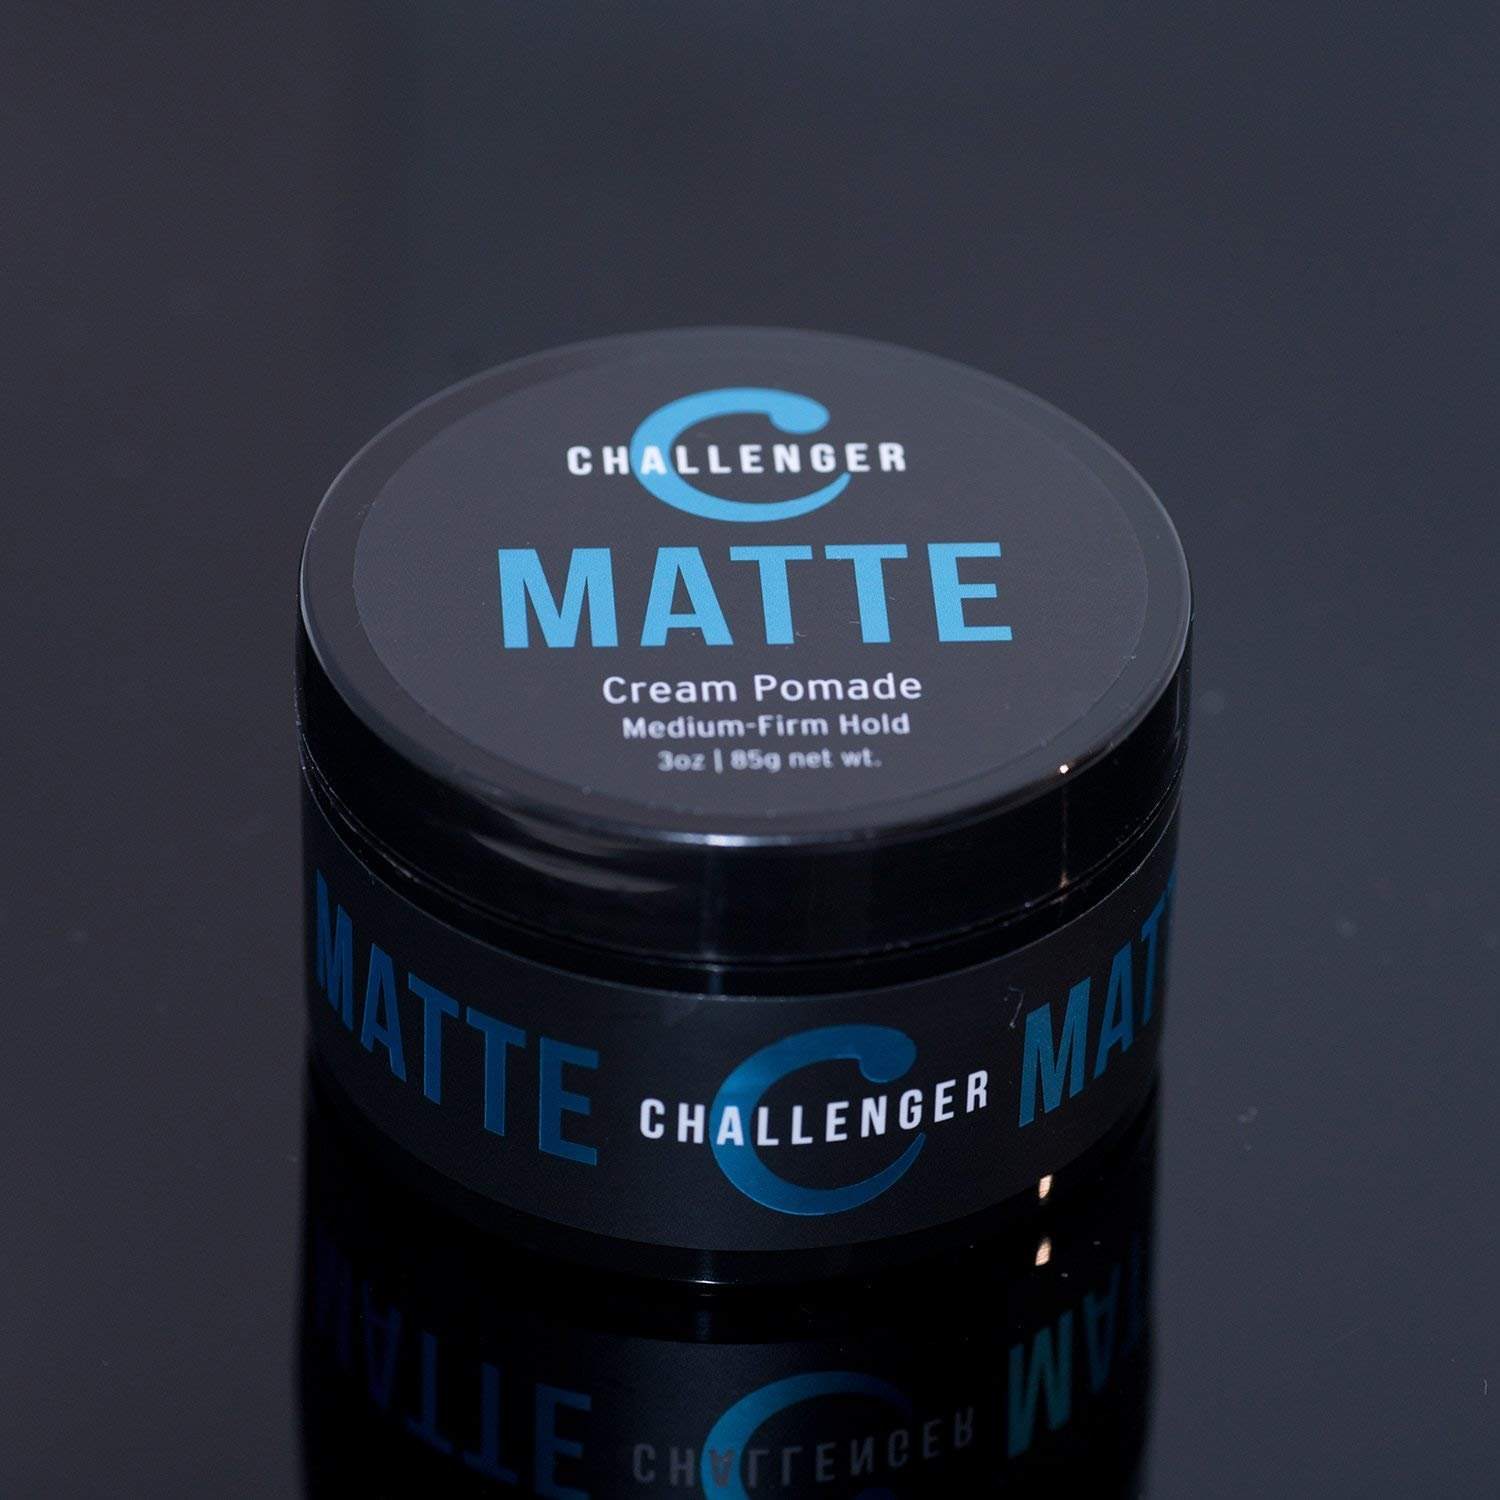 Matte Cream Pomade - Challenger 3oz - Medium Firm Hold - Water Based, Clean & Subtle Scent, Travel Friendly. Men's Hair Wax, Fiber, Clay, Paste, Styling Cream All In One by Challenger (Image #5)